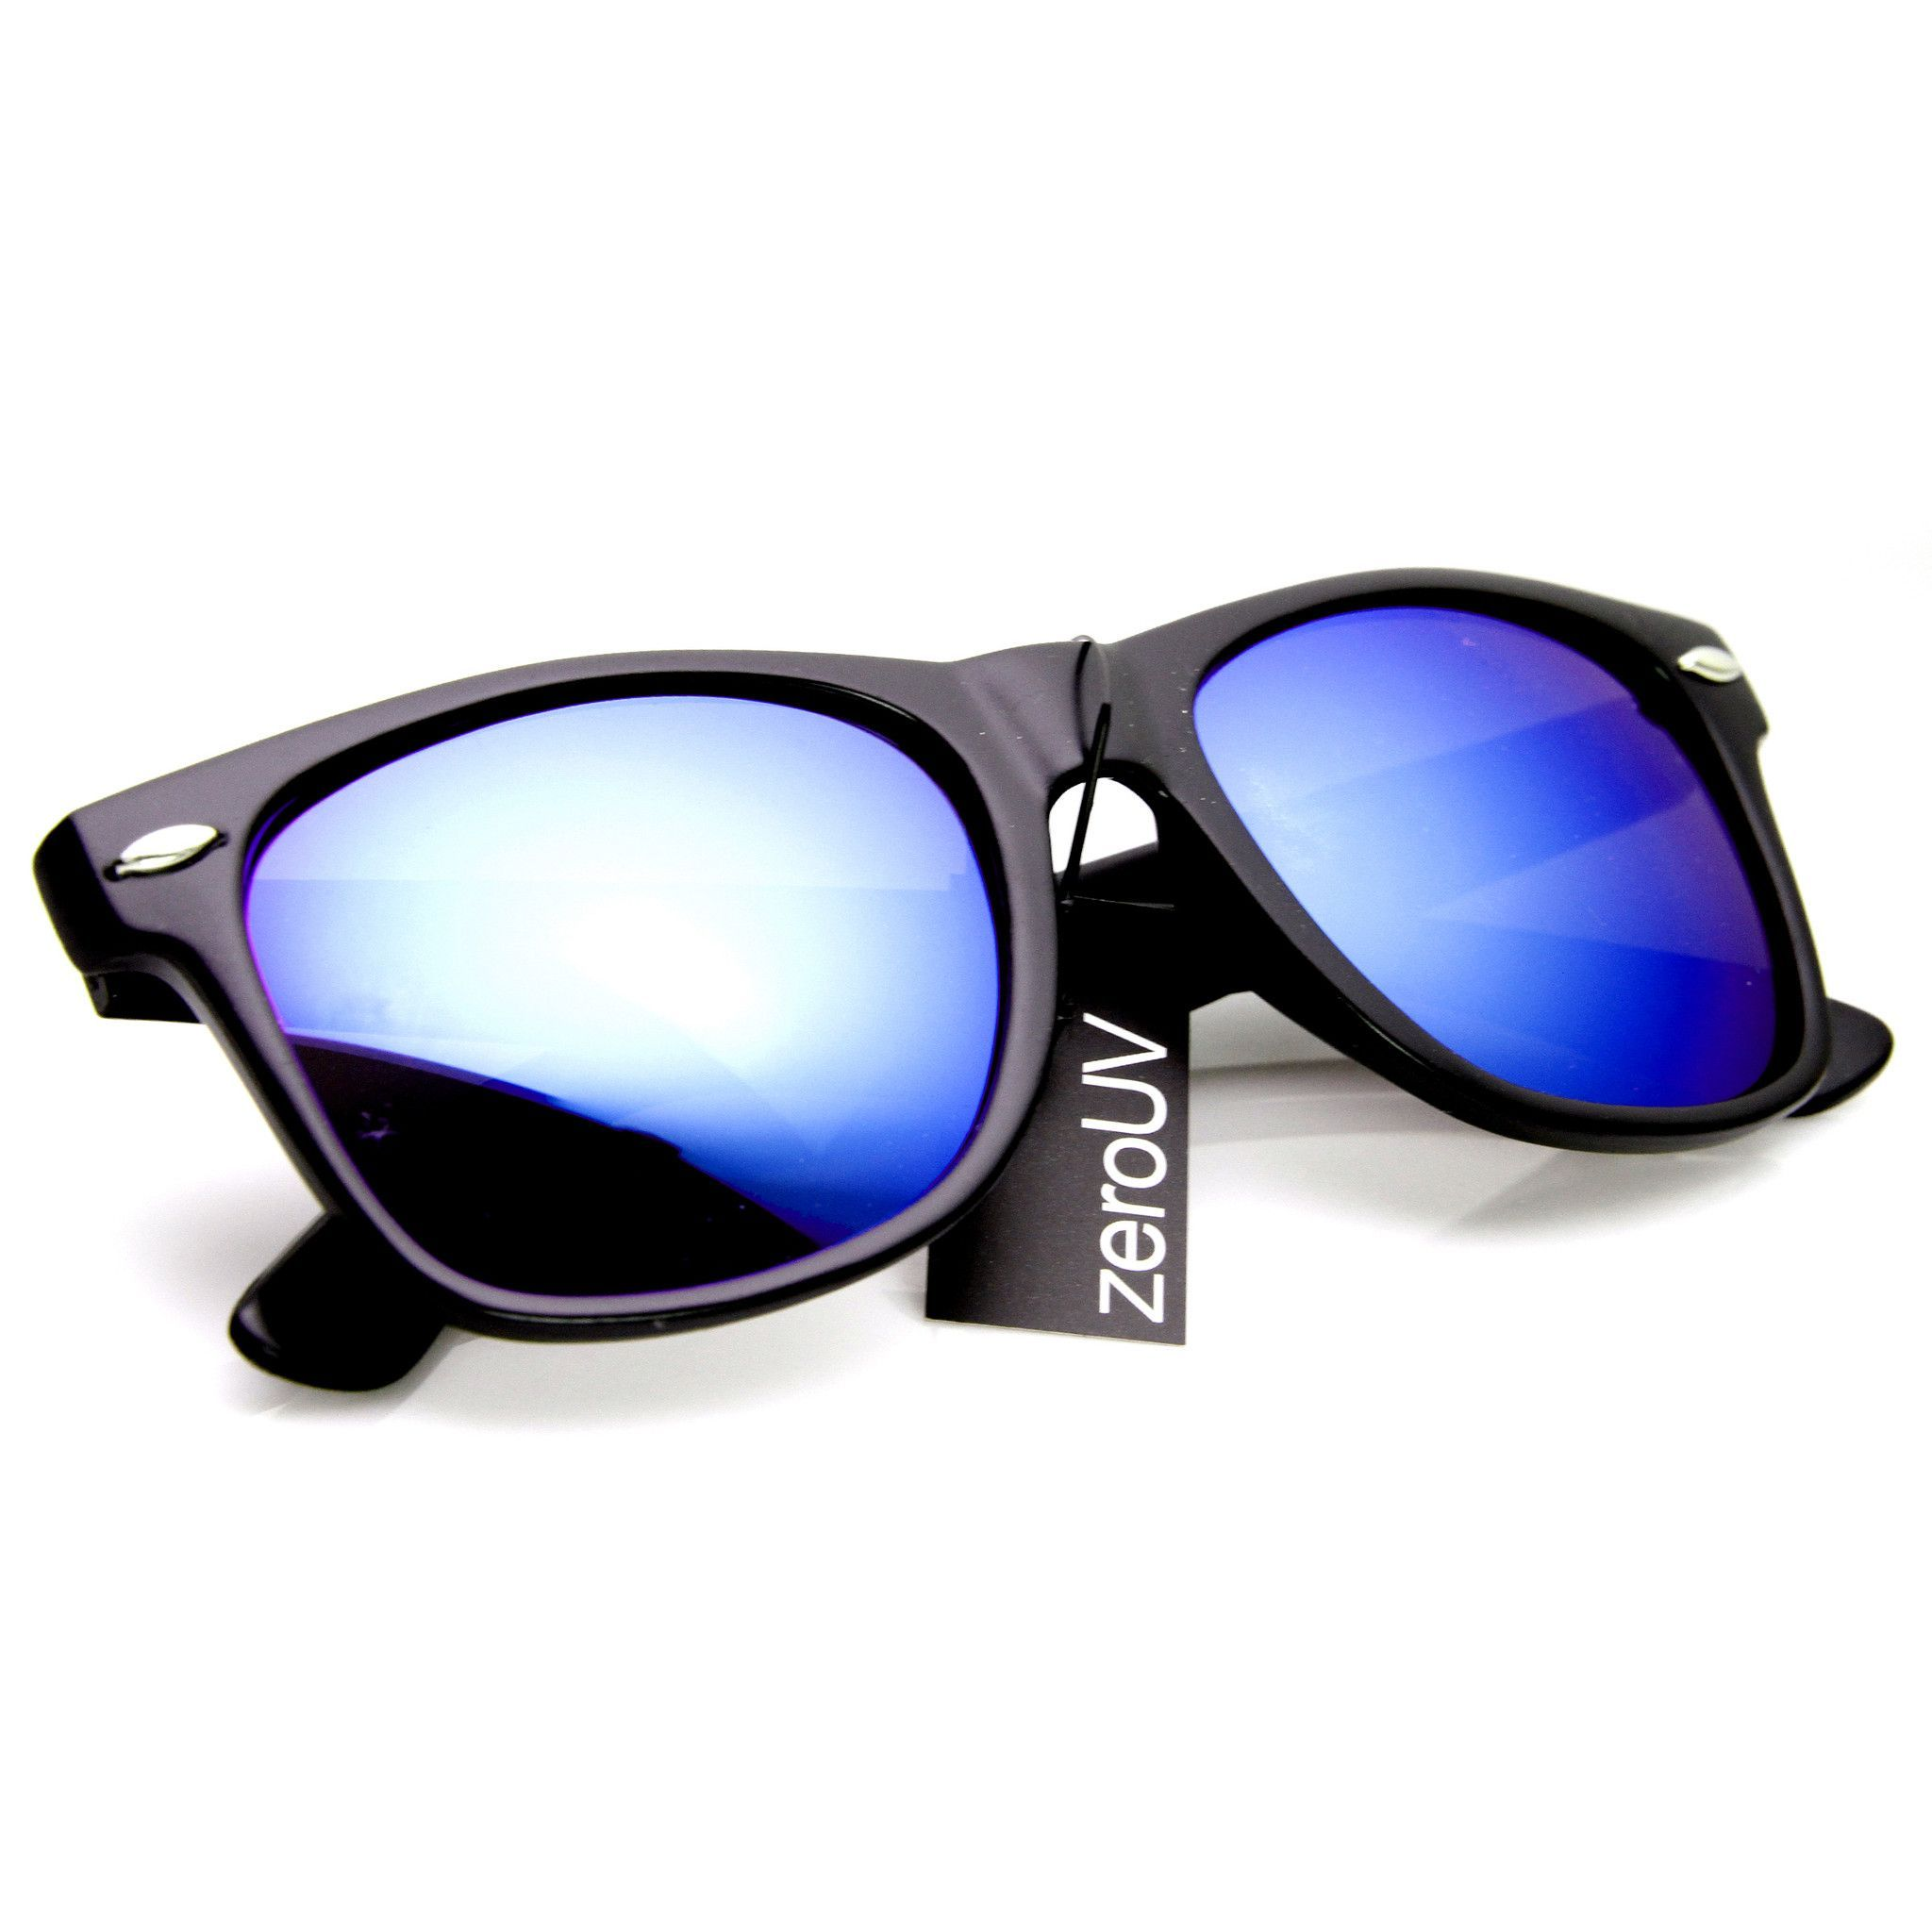 fe494e810c Retro Matte Black Horned Rim Flash Colored Lens Sunglasses 8025 ...